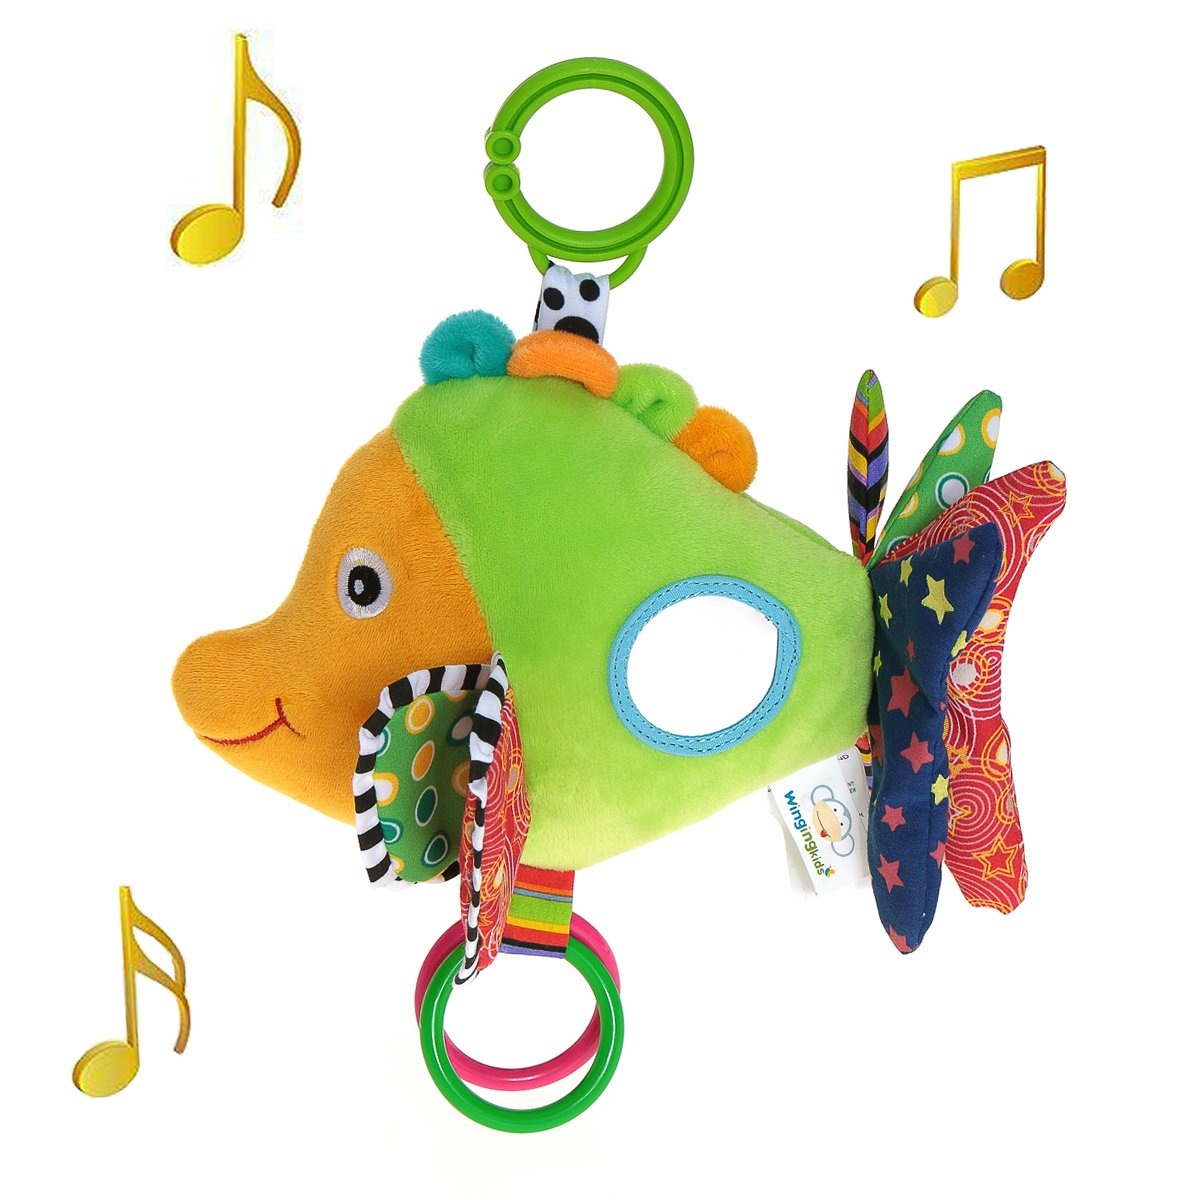 Wingingkids Baby Musical Toys Stroller Toys for 0-3 Year Old Baby Multifunction Baby Toys for Early Development